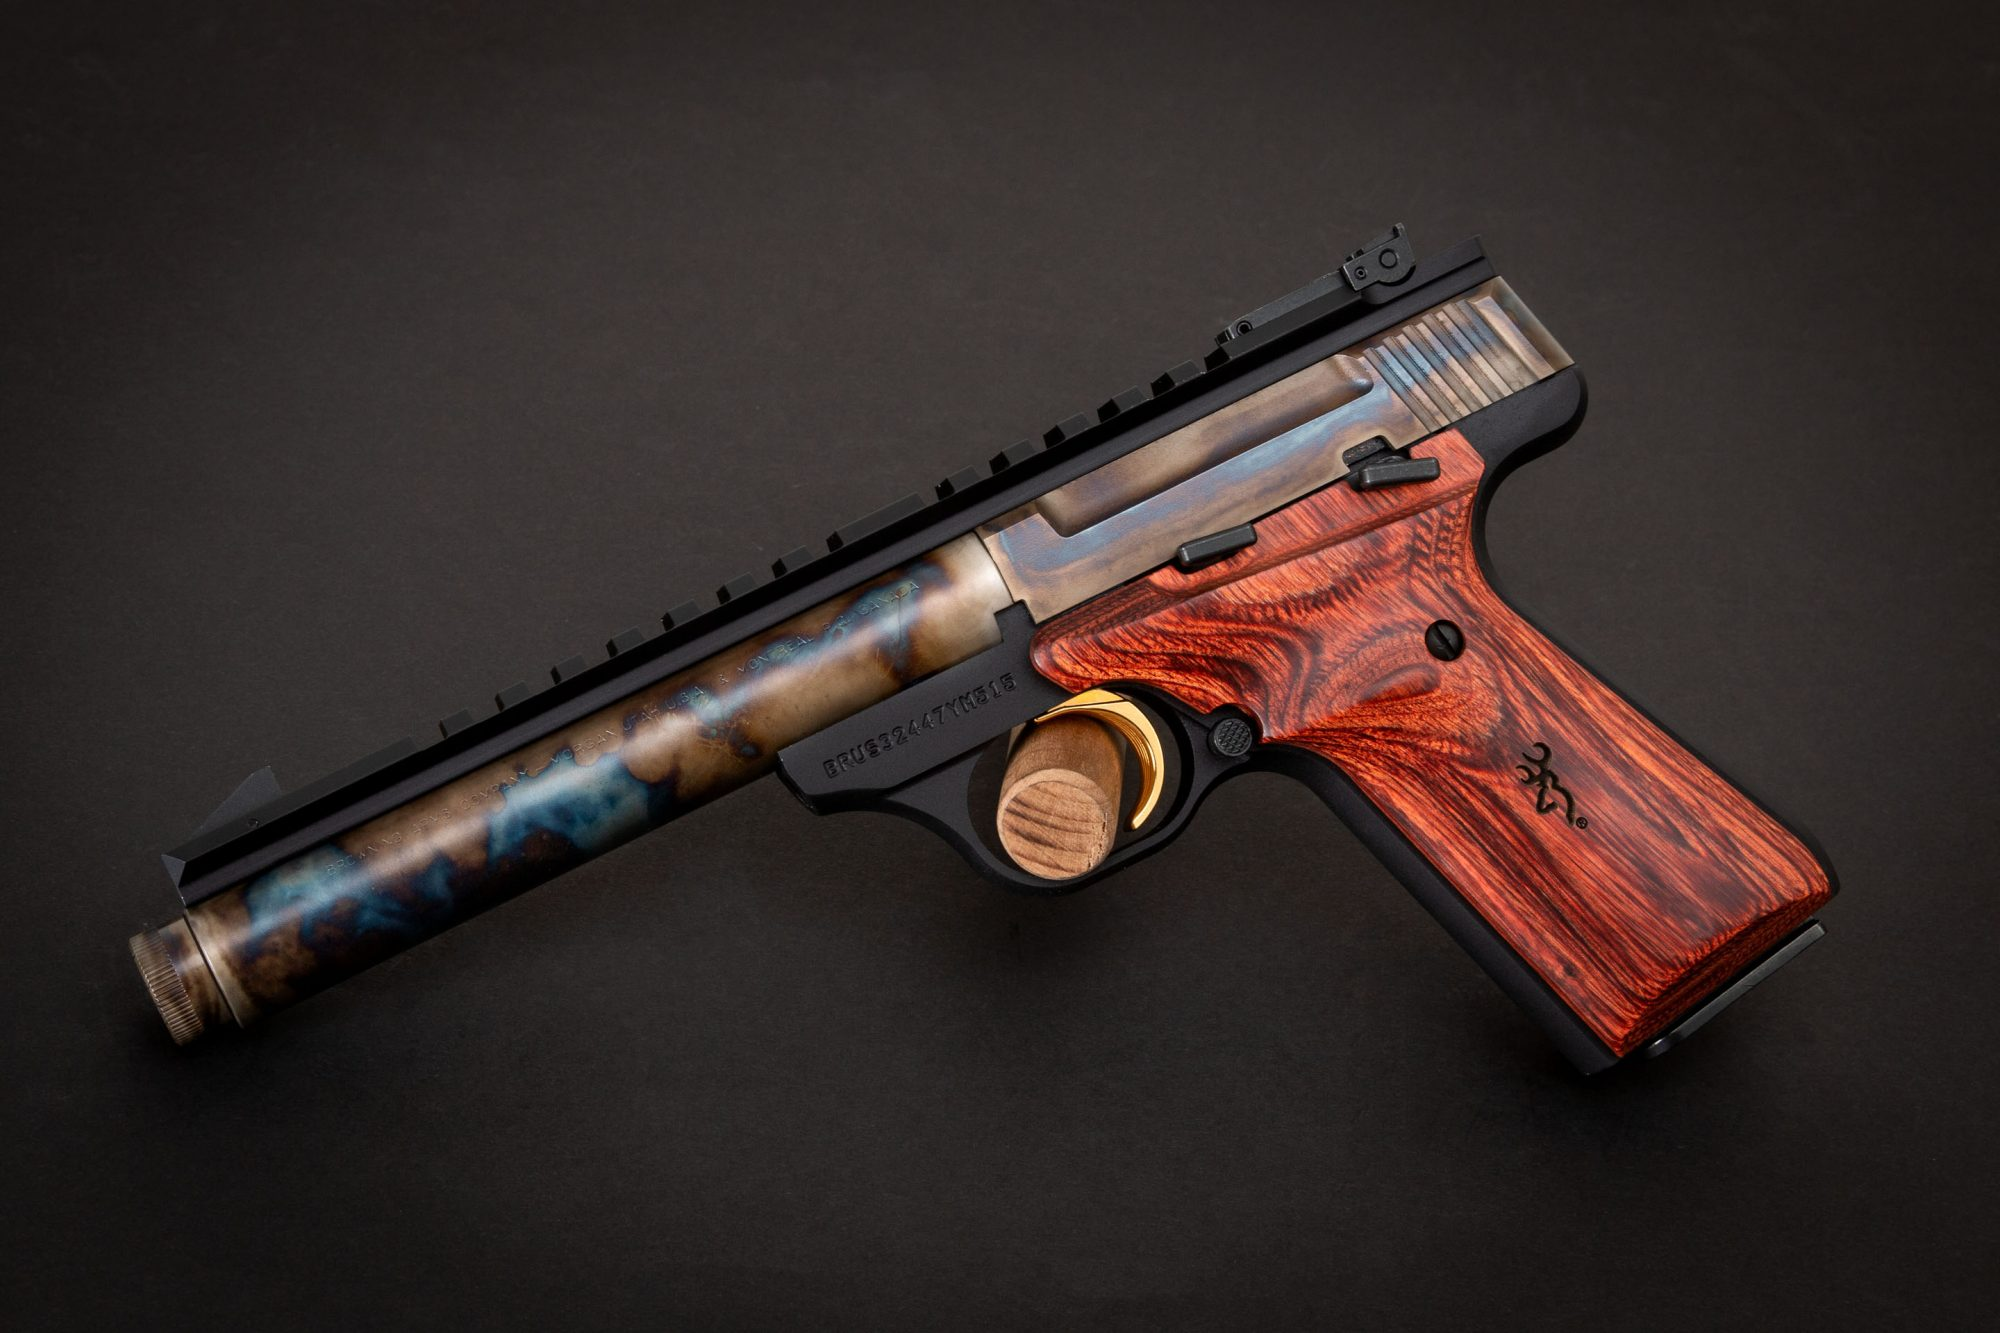 Photo of a color case hardened Browning Buck Mark Field Target with threaded barrel, featuring bone charcoal color case hardening by Turnbull Restoration of Bloomfield, NY